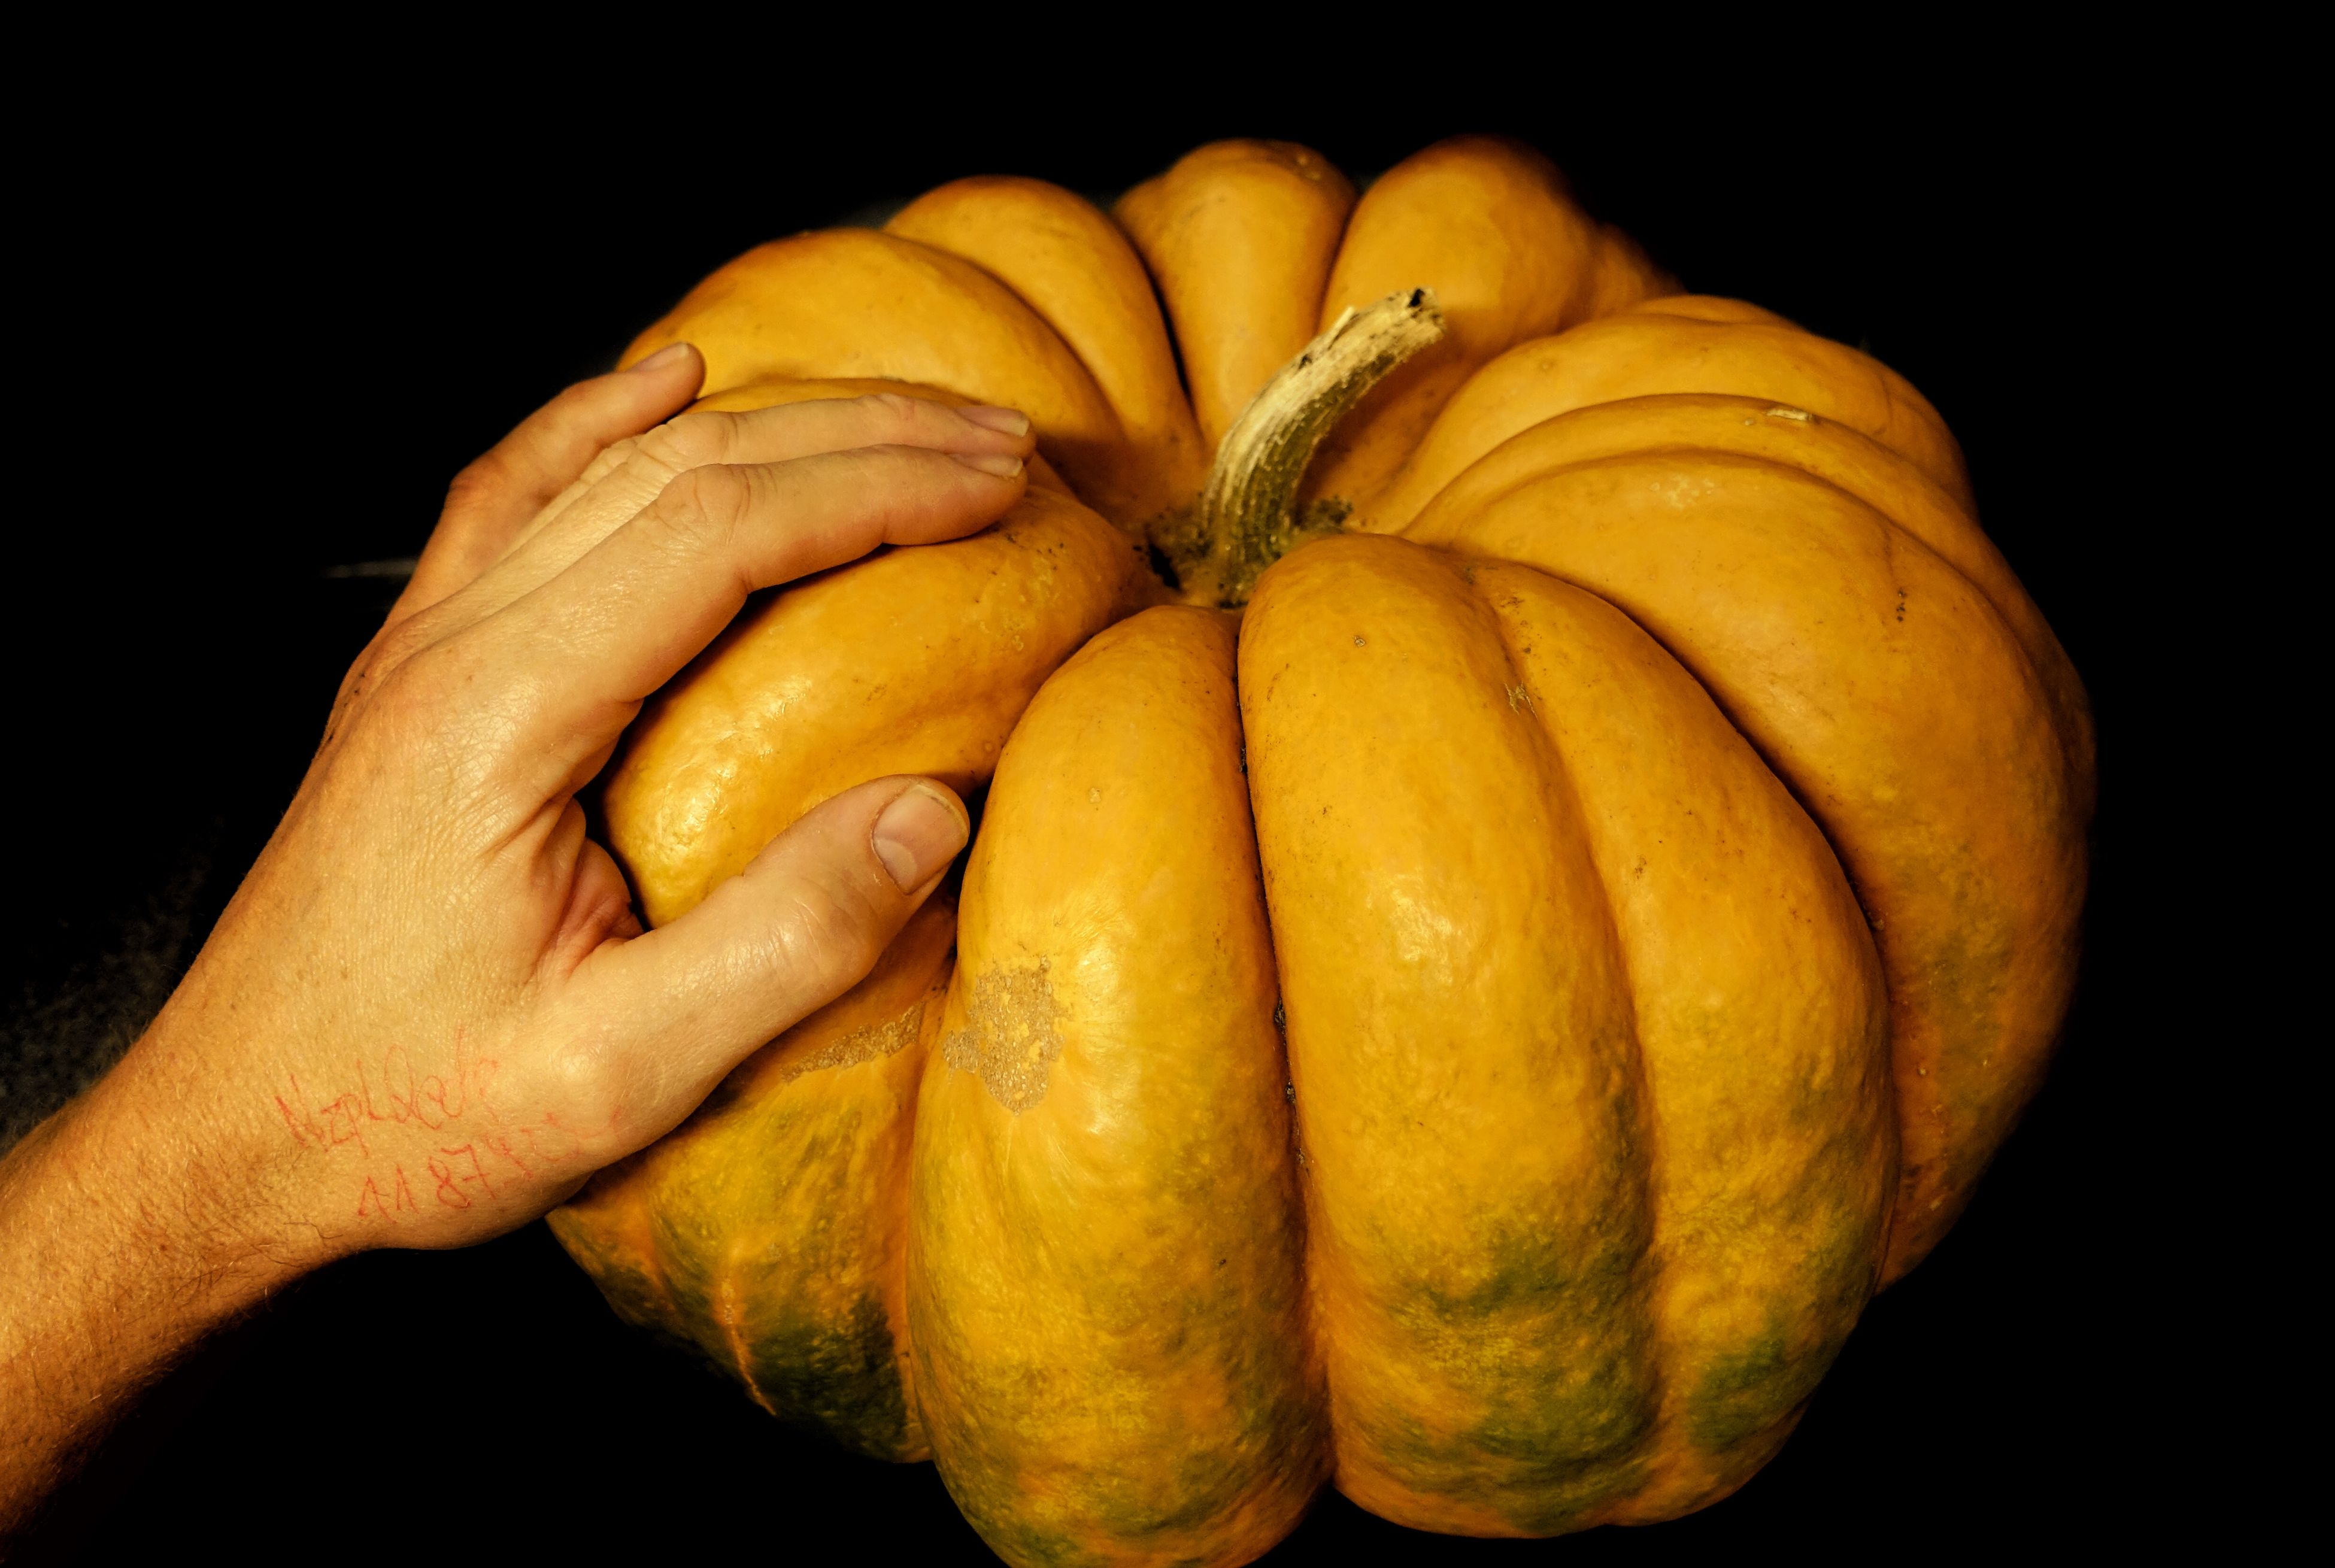 Pumpkin Muscat Pumpkin SONYrx100m3 EyeEm Nature Lover The Colors Of Autmn The Beauty In My Gardens Sony Rx100 Iii Sony Rx100 M3 Autumn Colors Hand Going to eat that beauty 😎🎃🎃🎃🎃🎃🎃🎃🎃🎃🎃🎃🎃